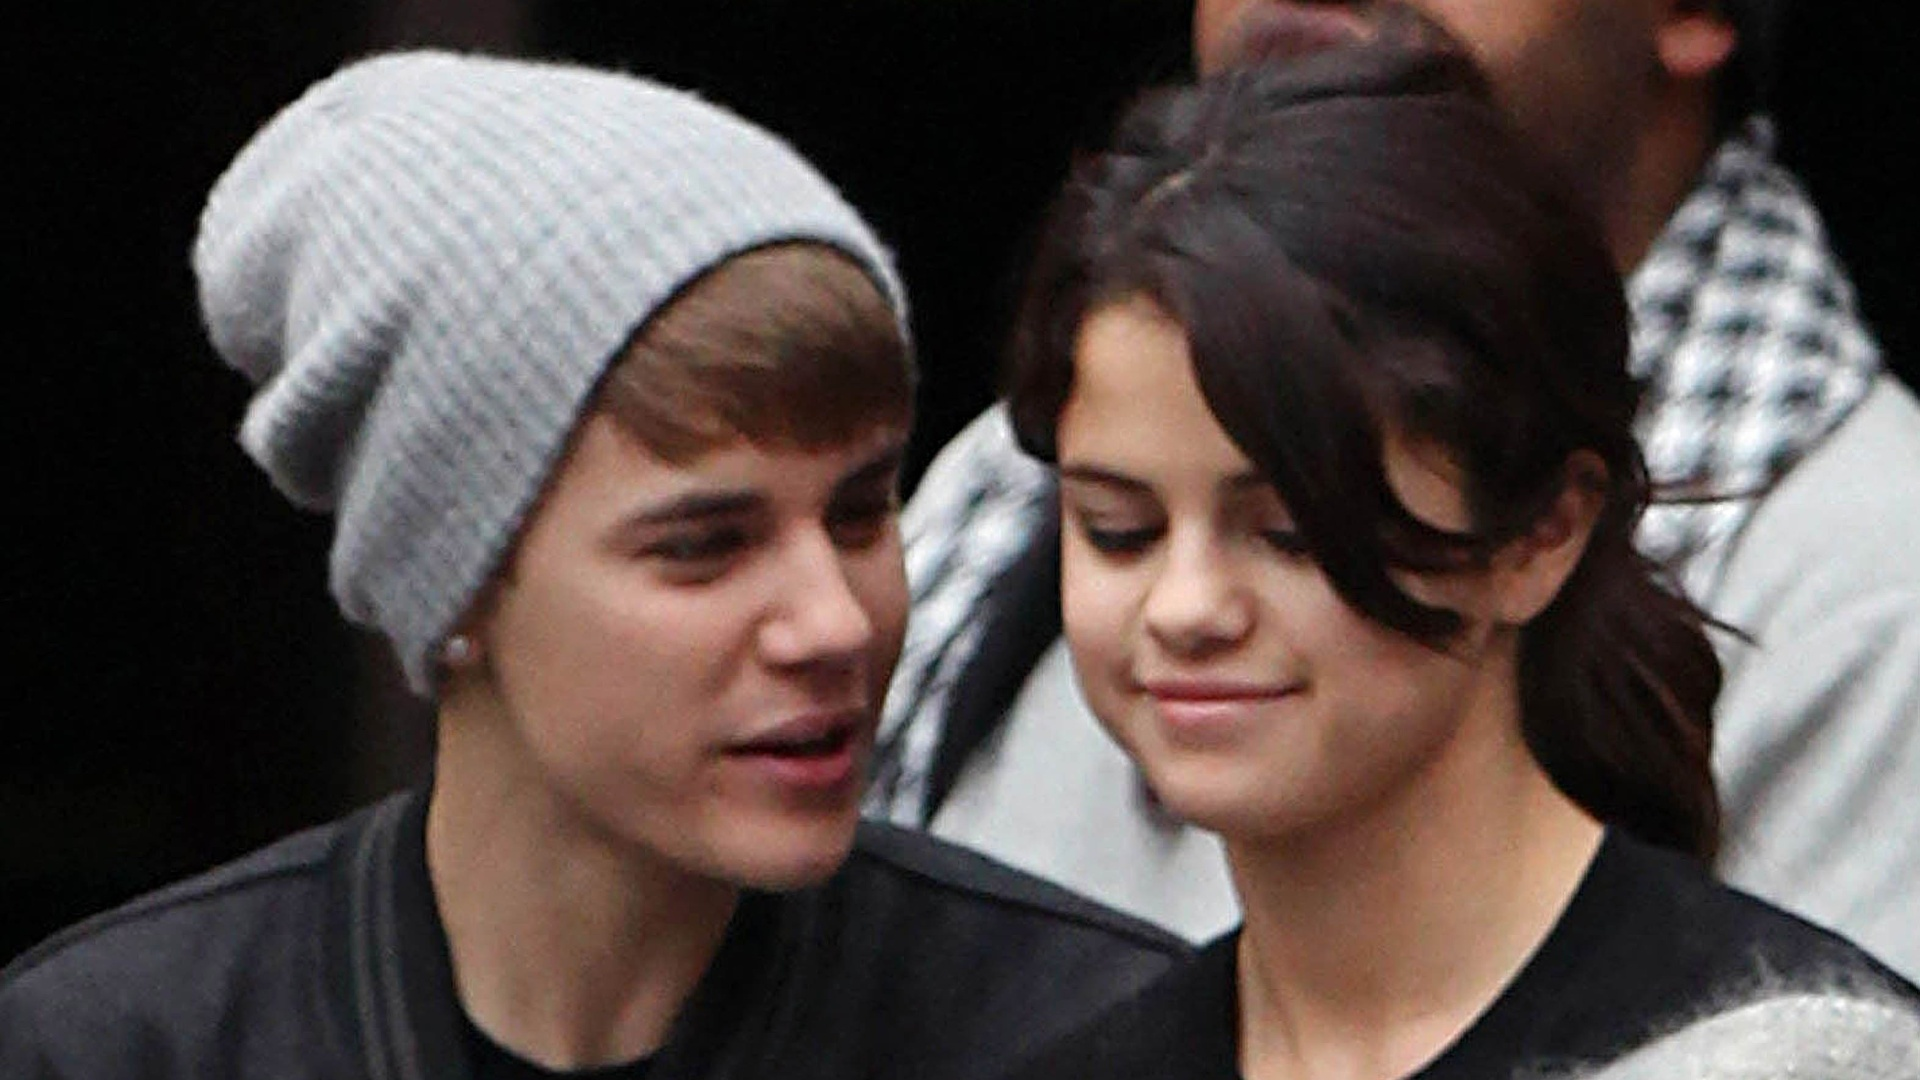 Aps apresentaes no EMA, Justin Bieber e Selena Gomez vo a estdio de futebol em Londres